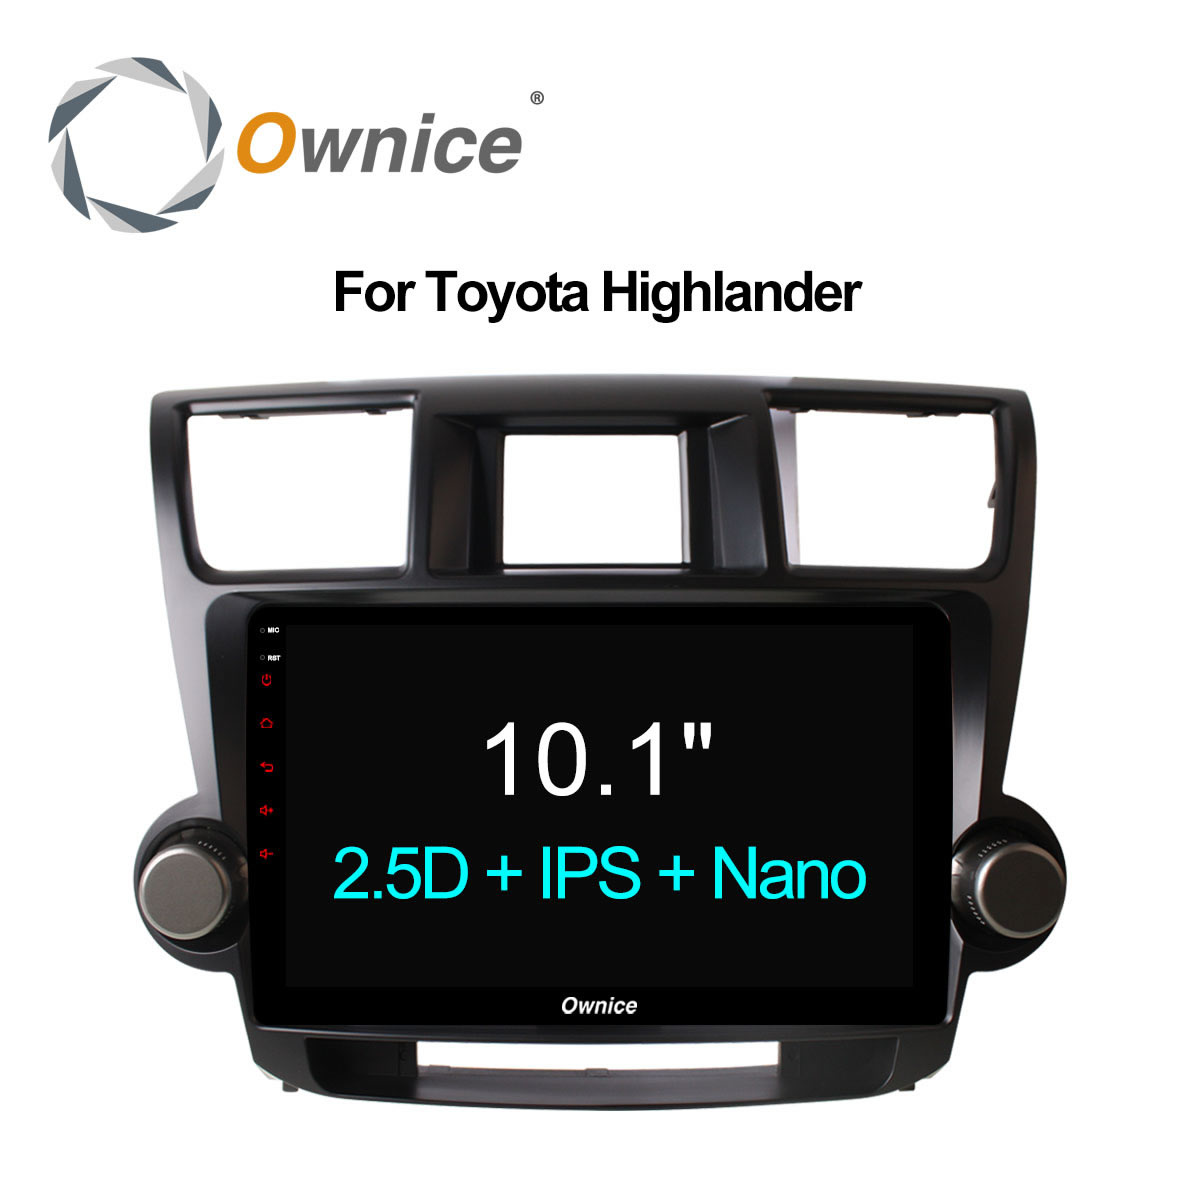 Ownice C500+ 10.1 Car Radio GPS DVD Navi for Toyota HIGHLANDER 2009 2013 2014 2015 Universal 2DIN Android 6.0 8 core 4G LTE 32G